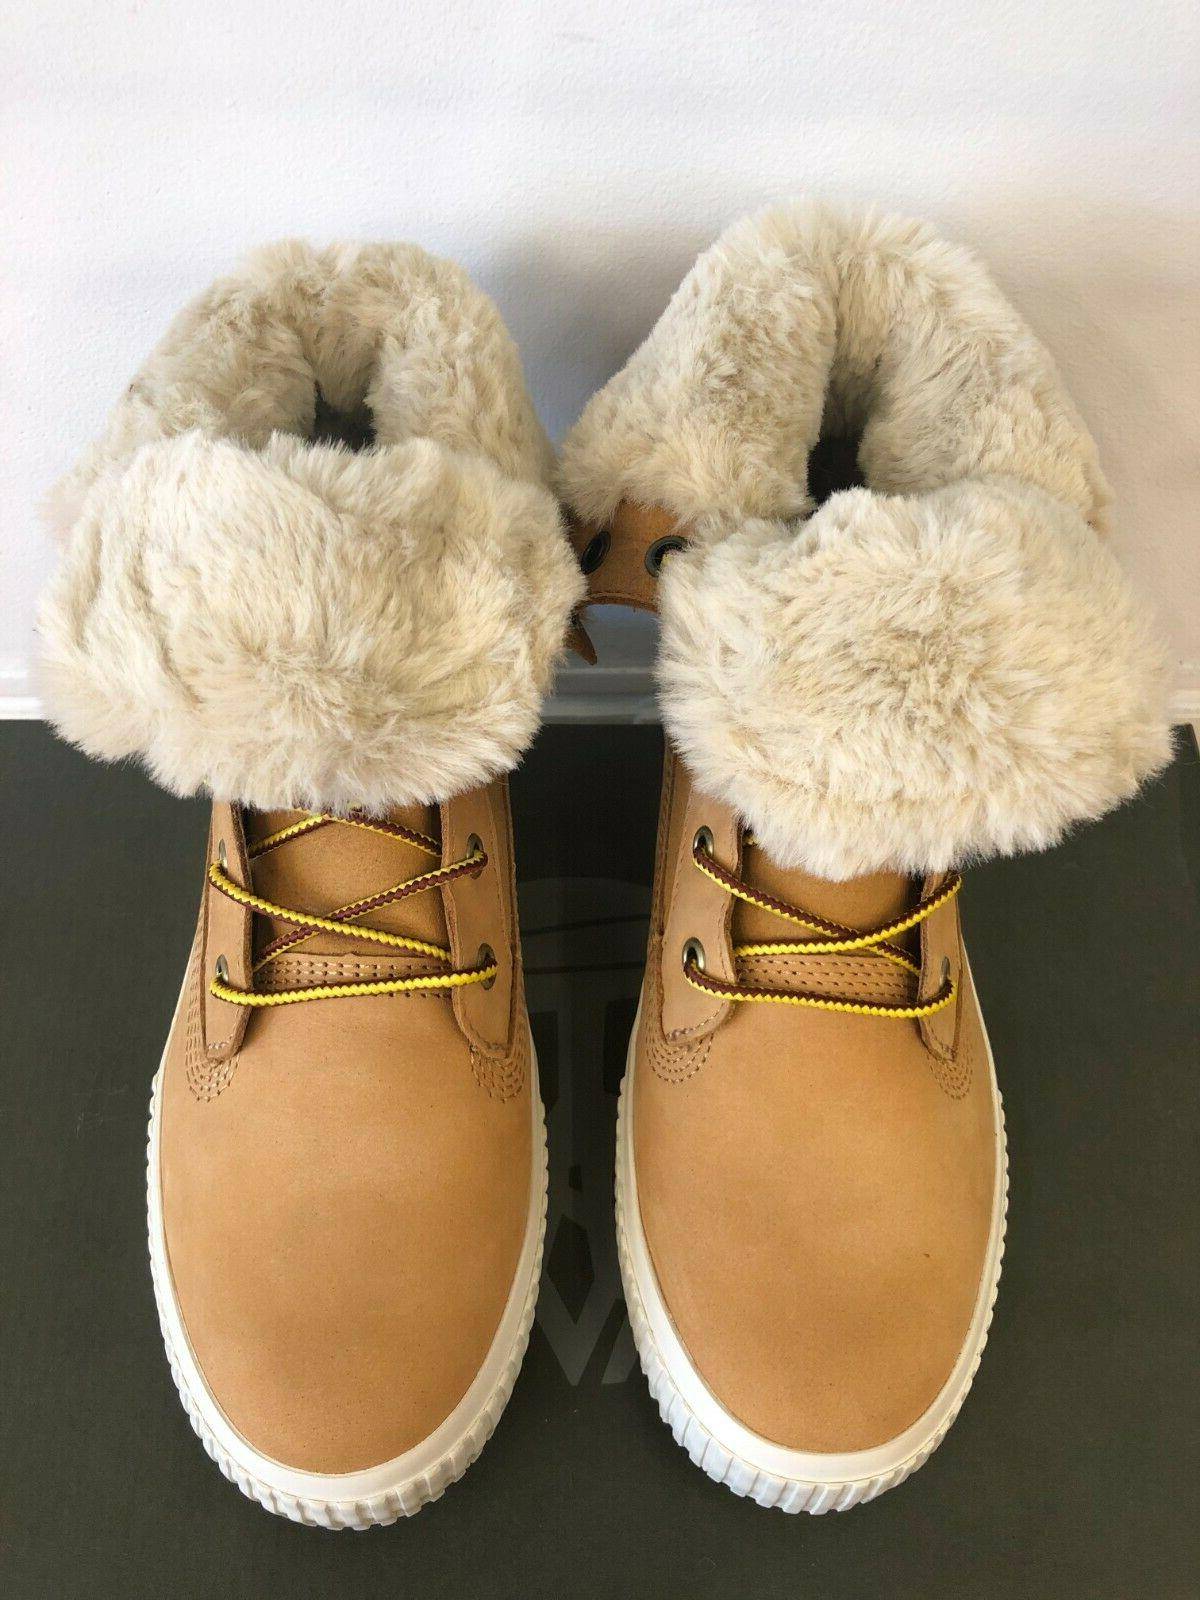 NEW IN THE TIMBERLAND SKYLA WHEAT BOOTS SHOES FOR WOMEN